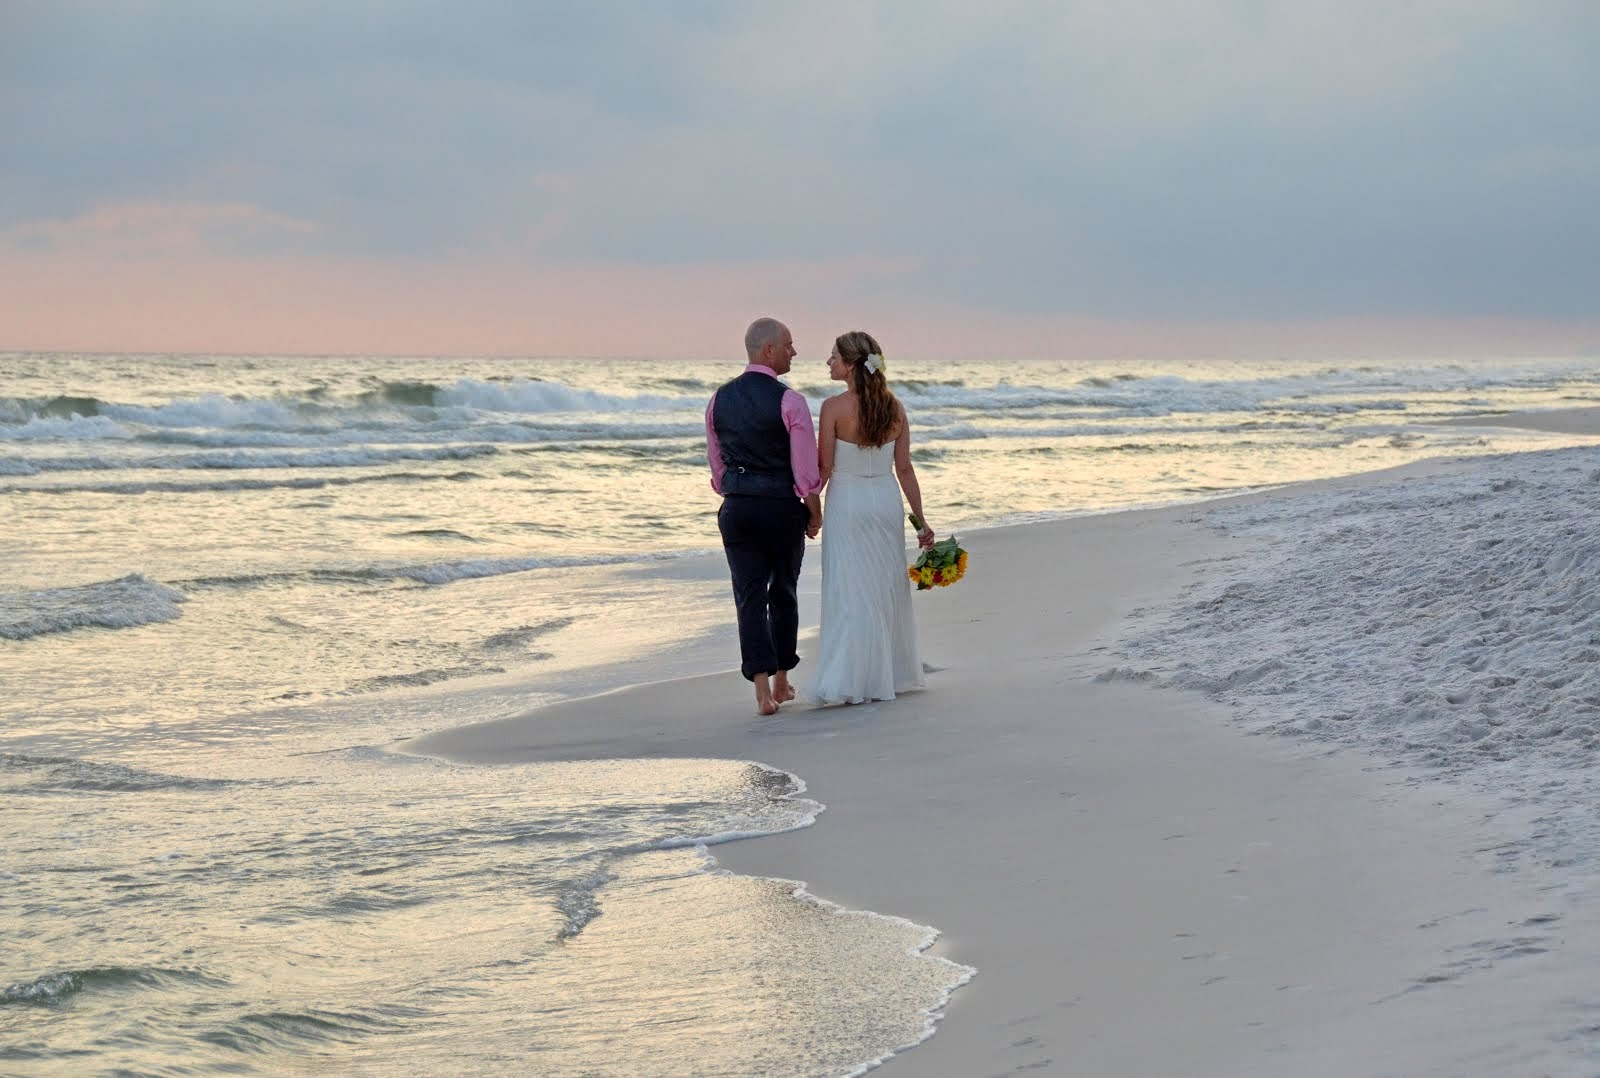 Sunset Beach Weddings July 2014